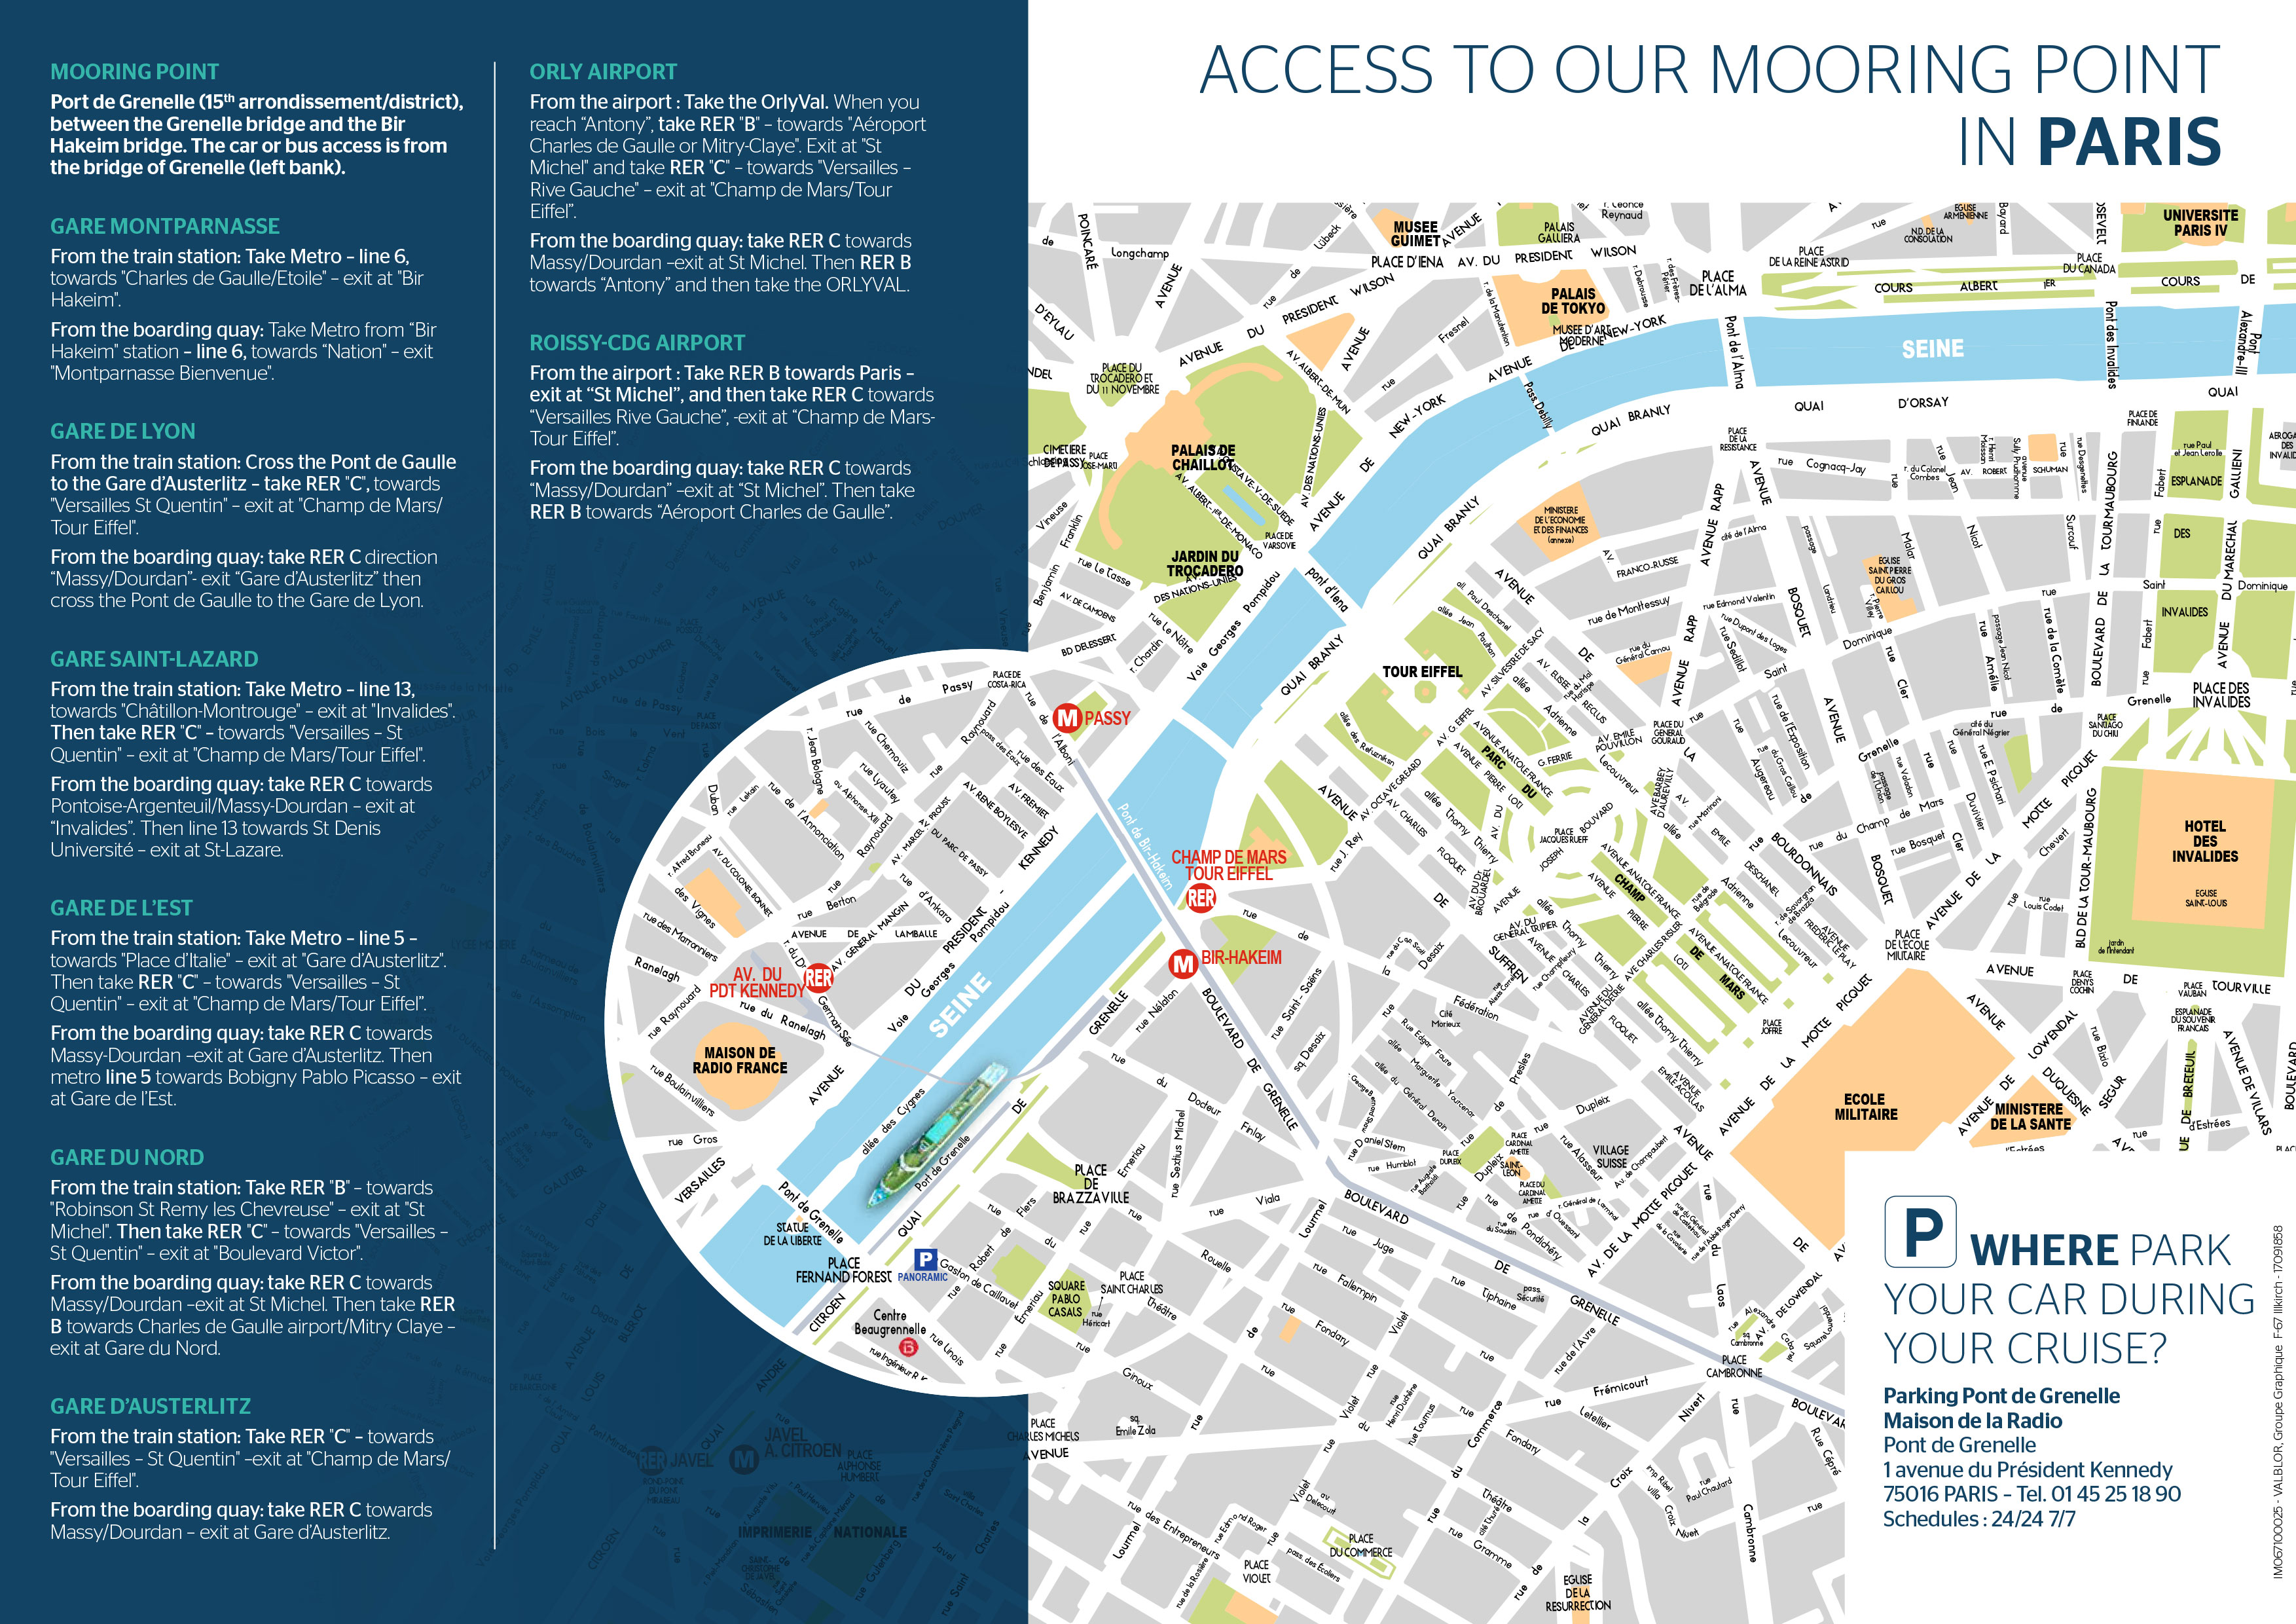 Download the map to reach the terminal to board your Seine Cruise in Paris.